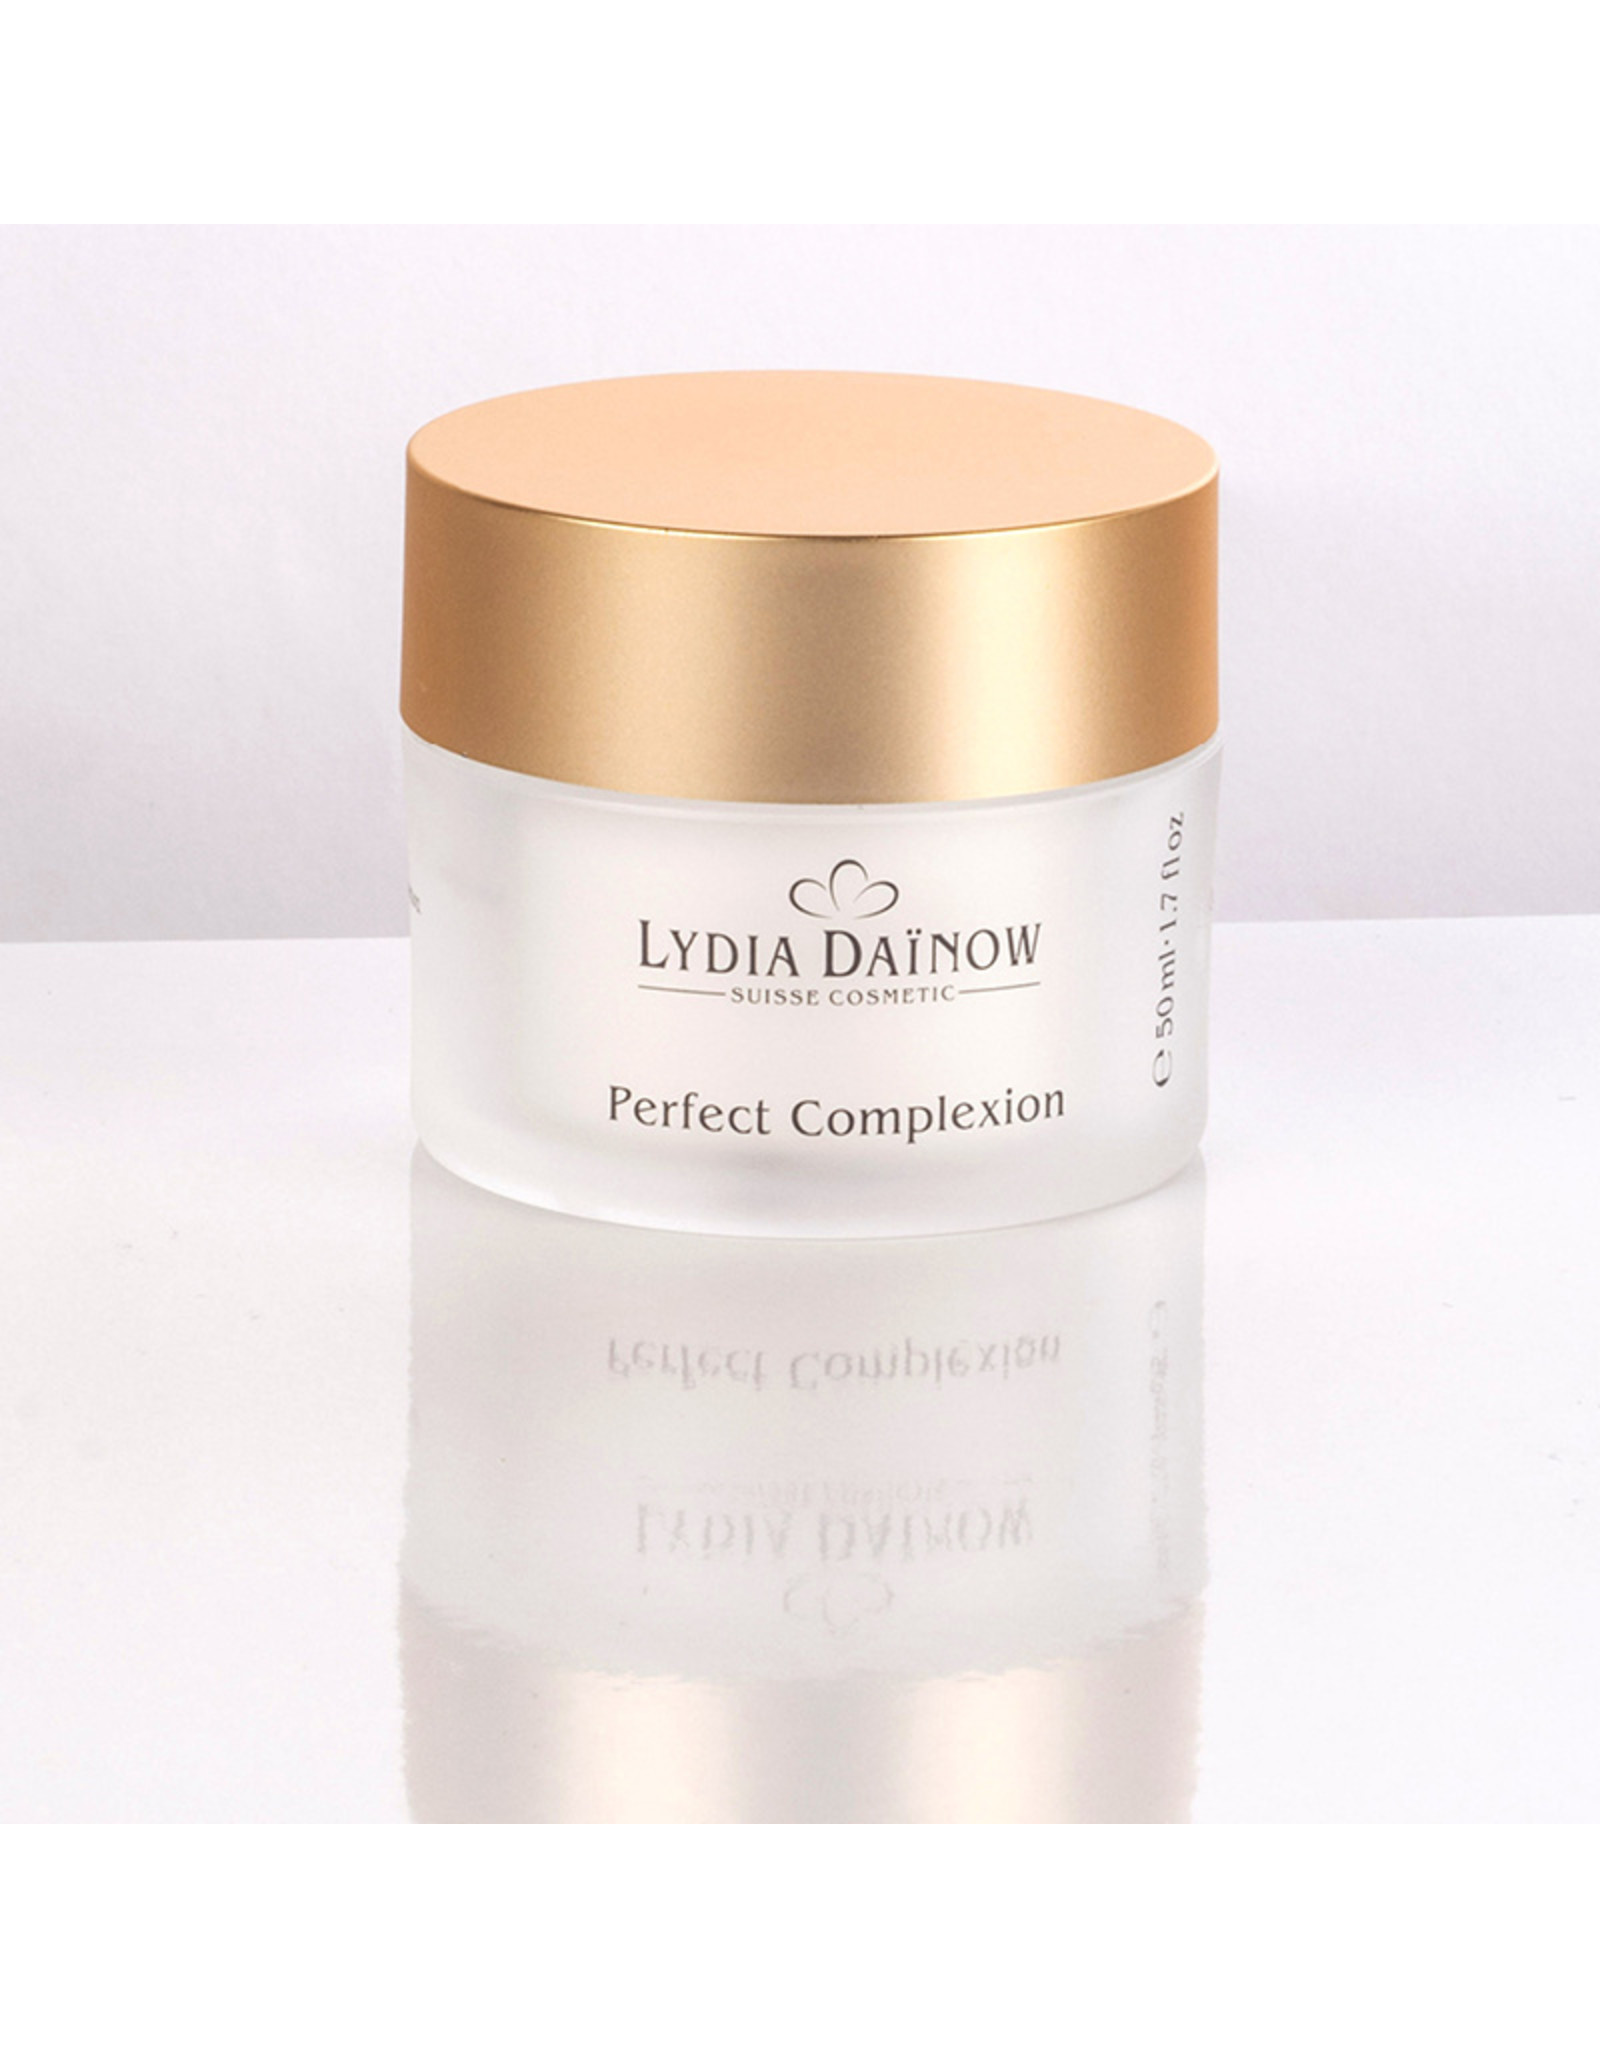 Lydïa Dainow Perfect Complexion - Day Cream